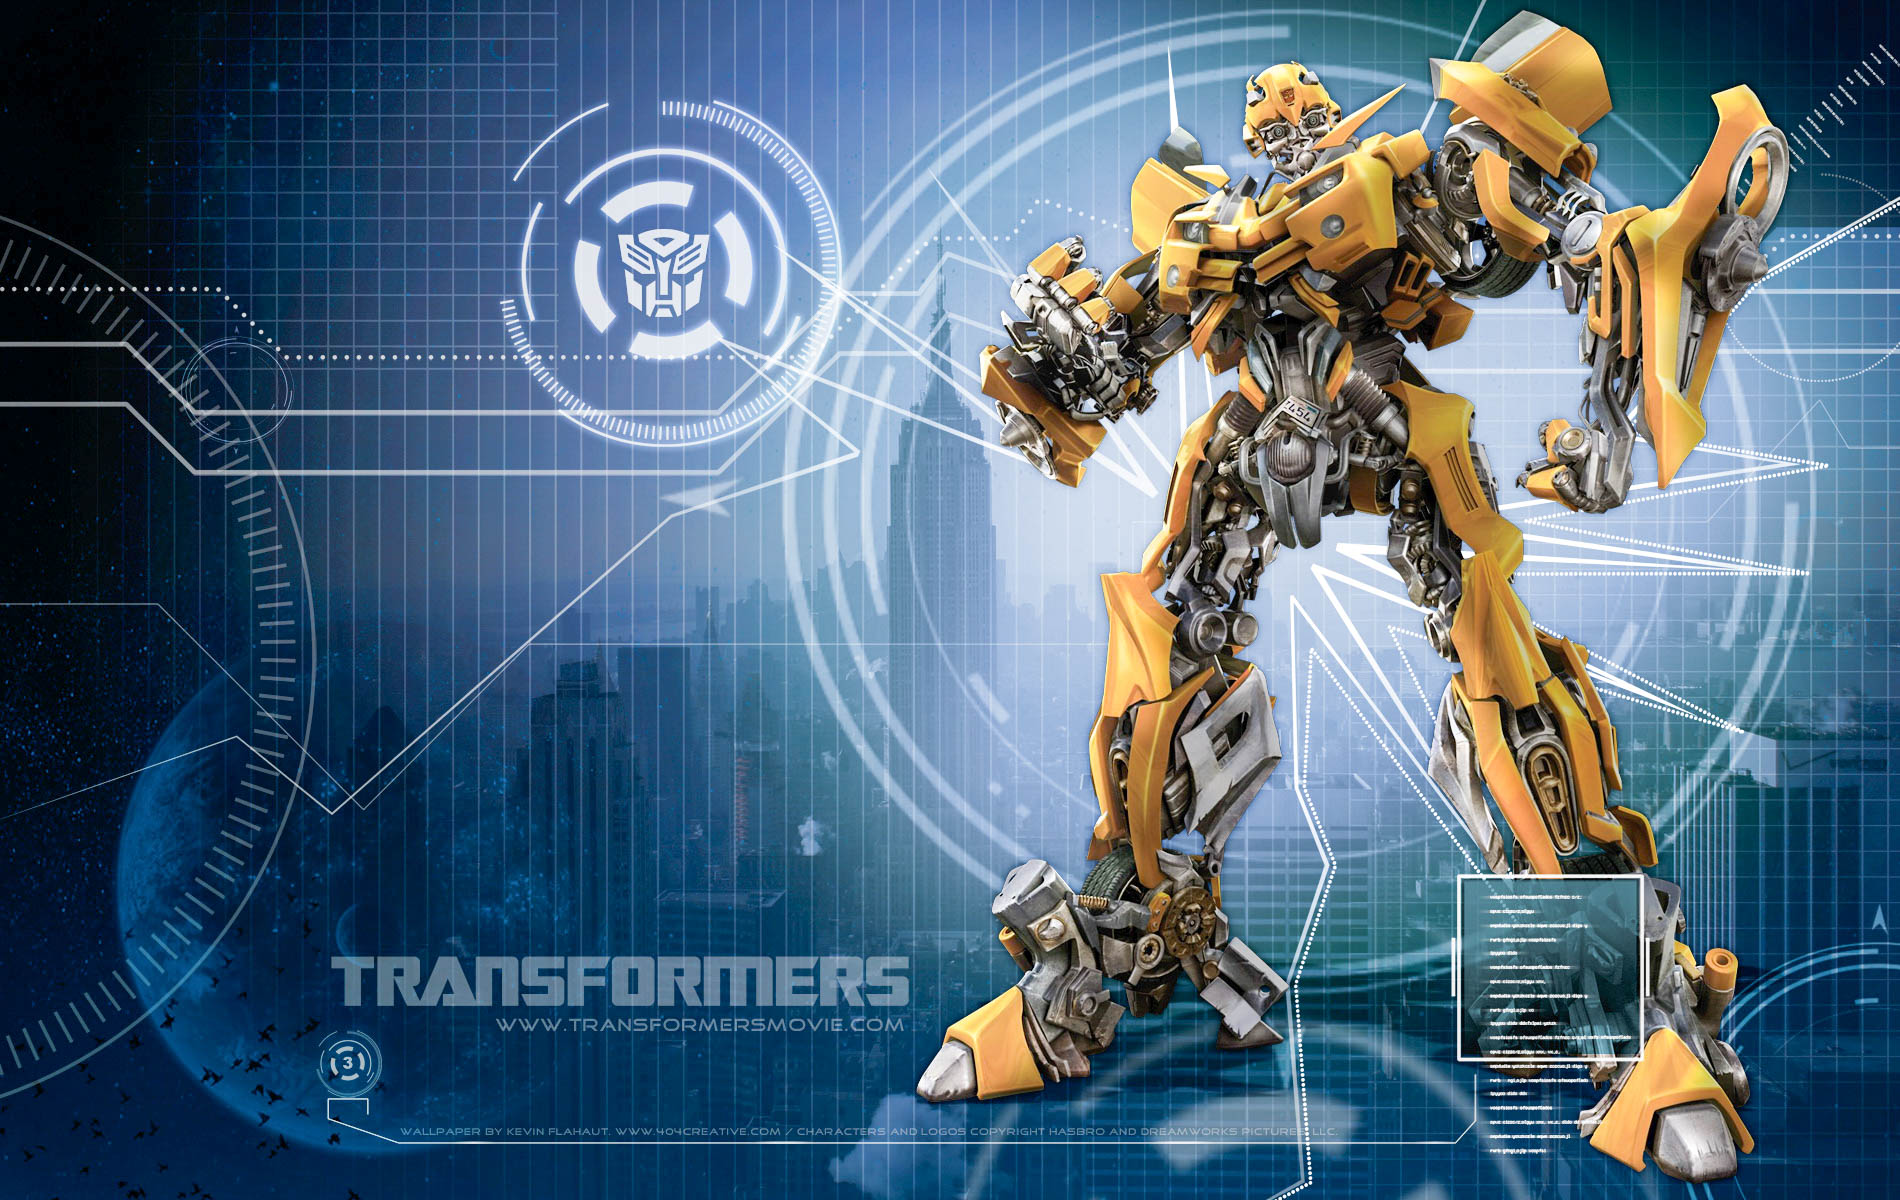 Download 3d Wallpapers For Pc Desktop Transformers Awesome Hd Wallpapers High Resolution All